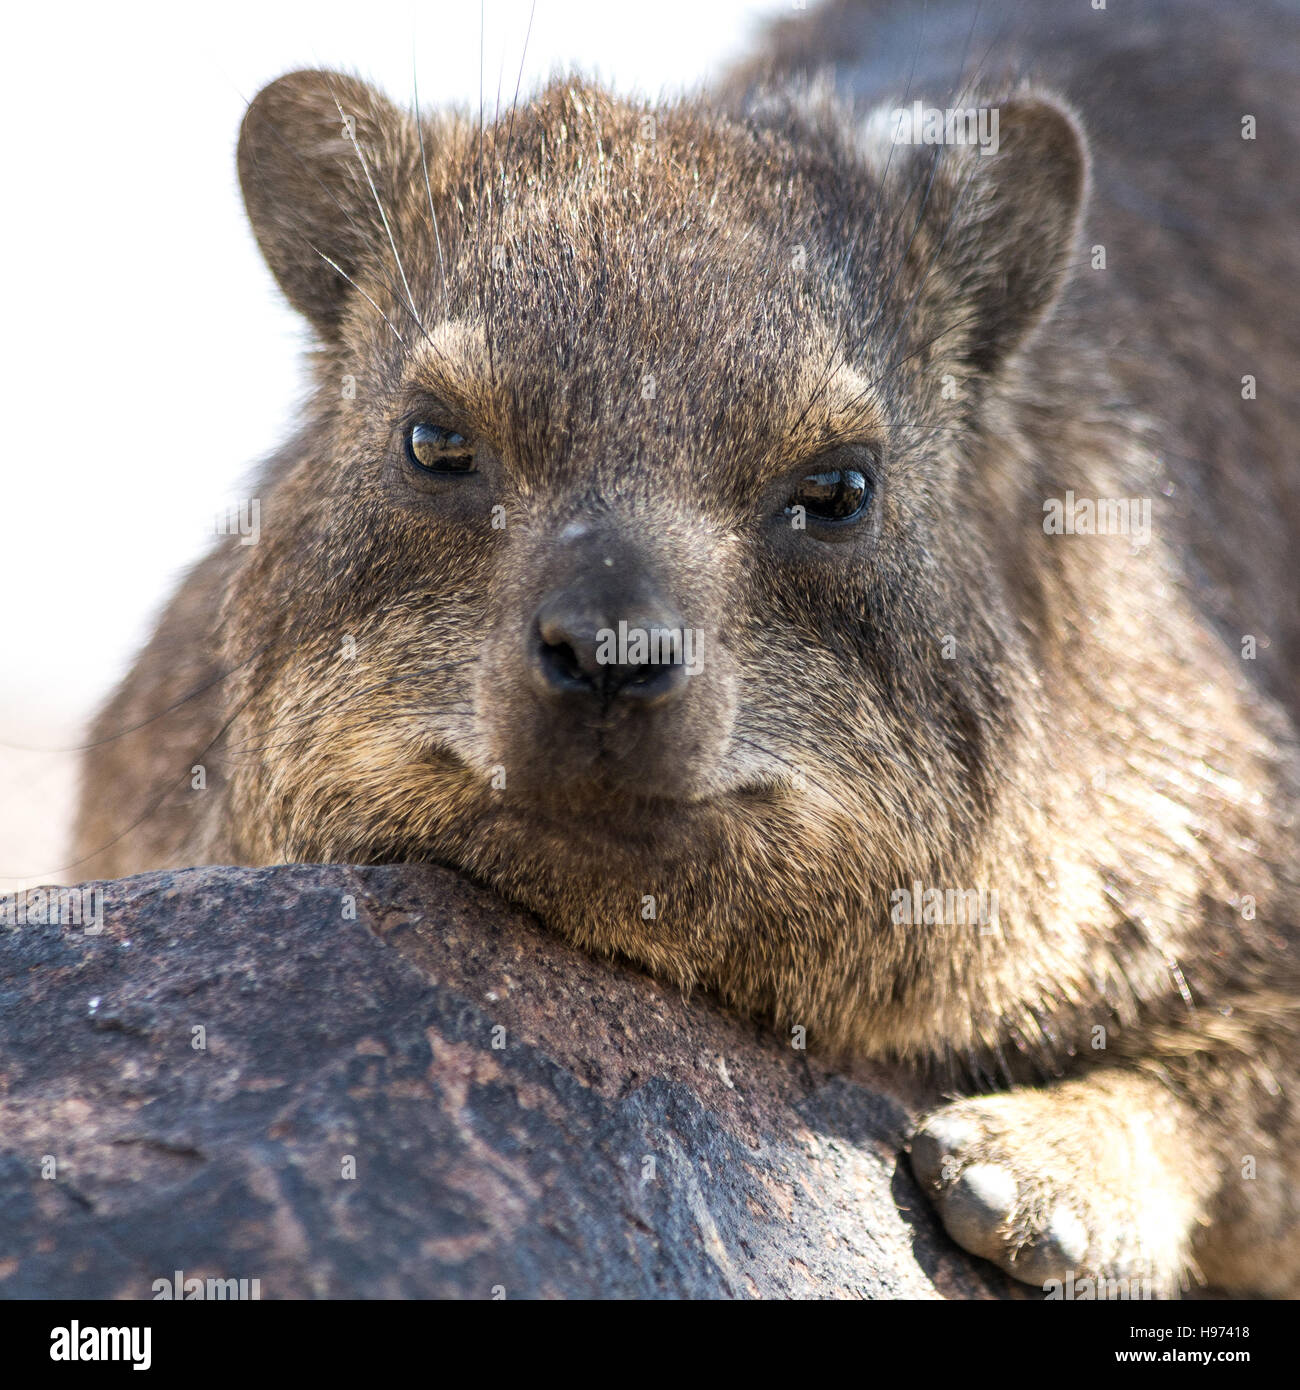 Portrait of a Cliff Hyrax, seen in namibia, africa. - Stock Image